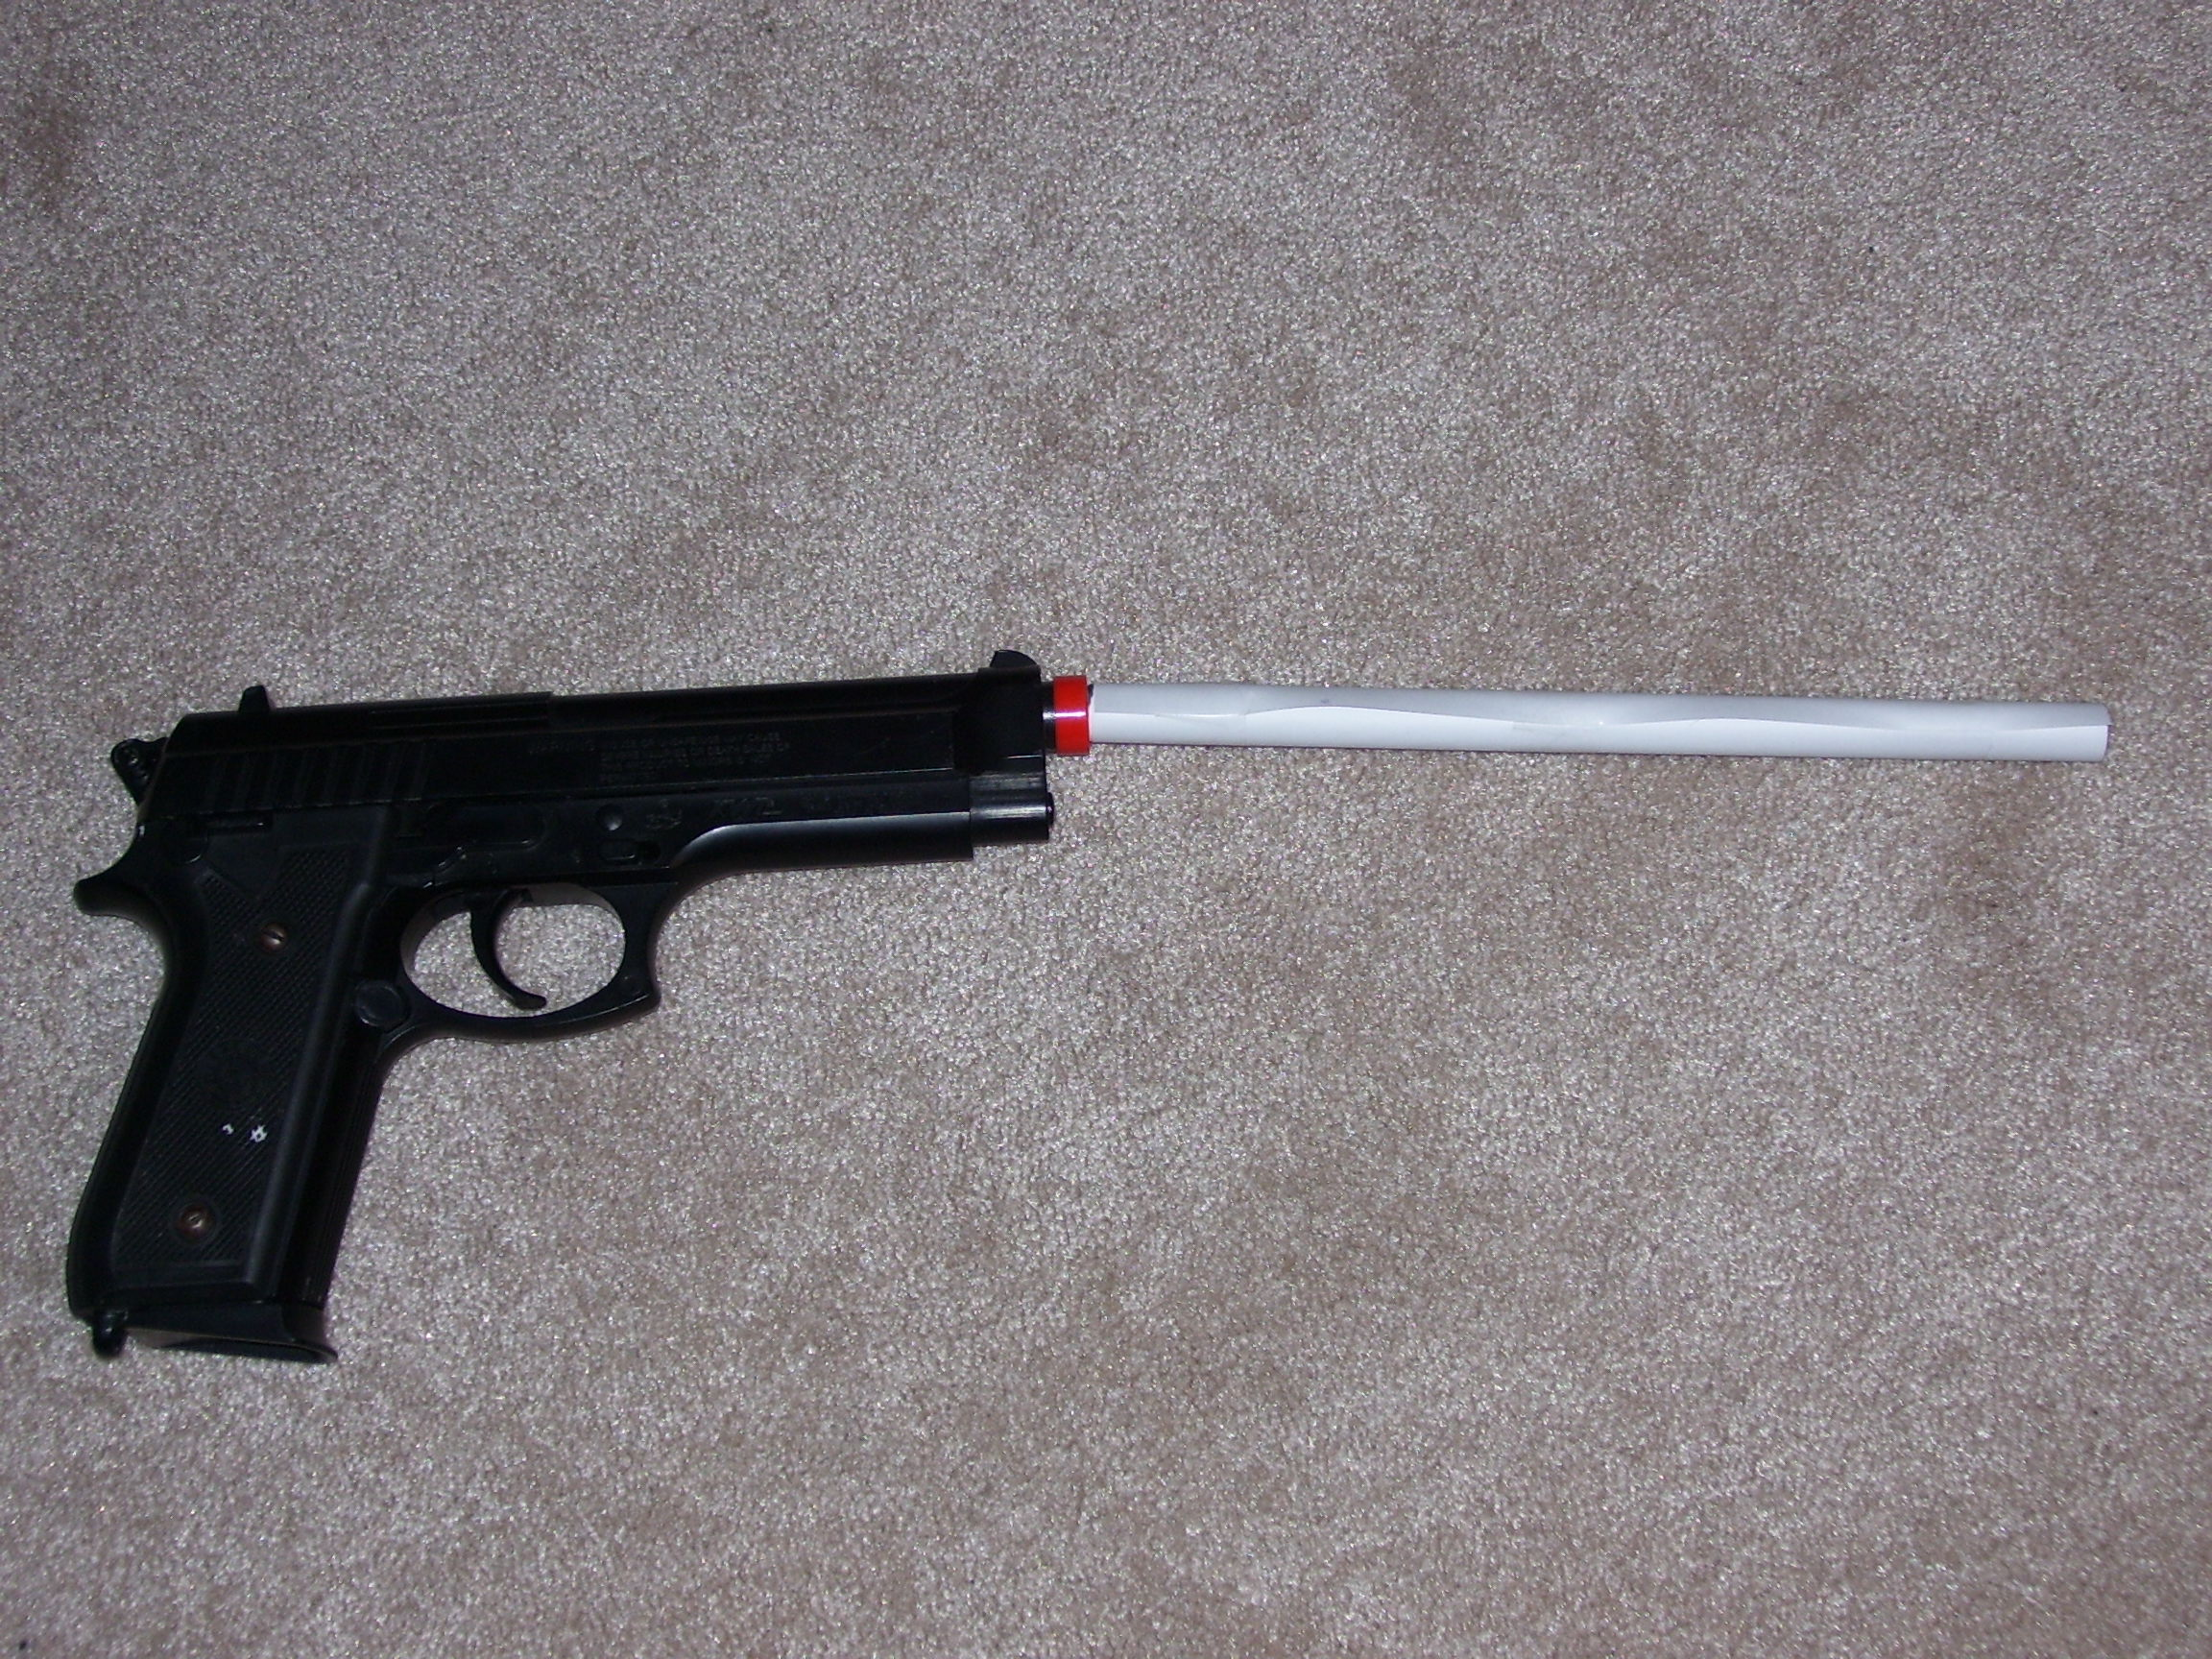 Picture of Next Putting It Into the Gun.